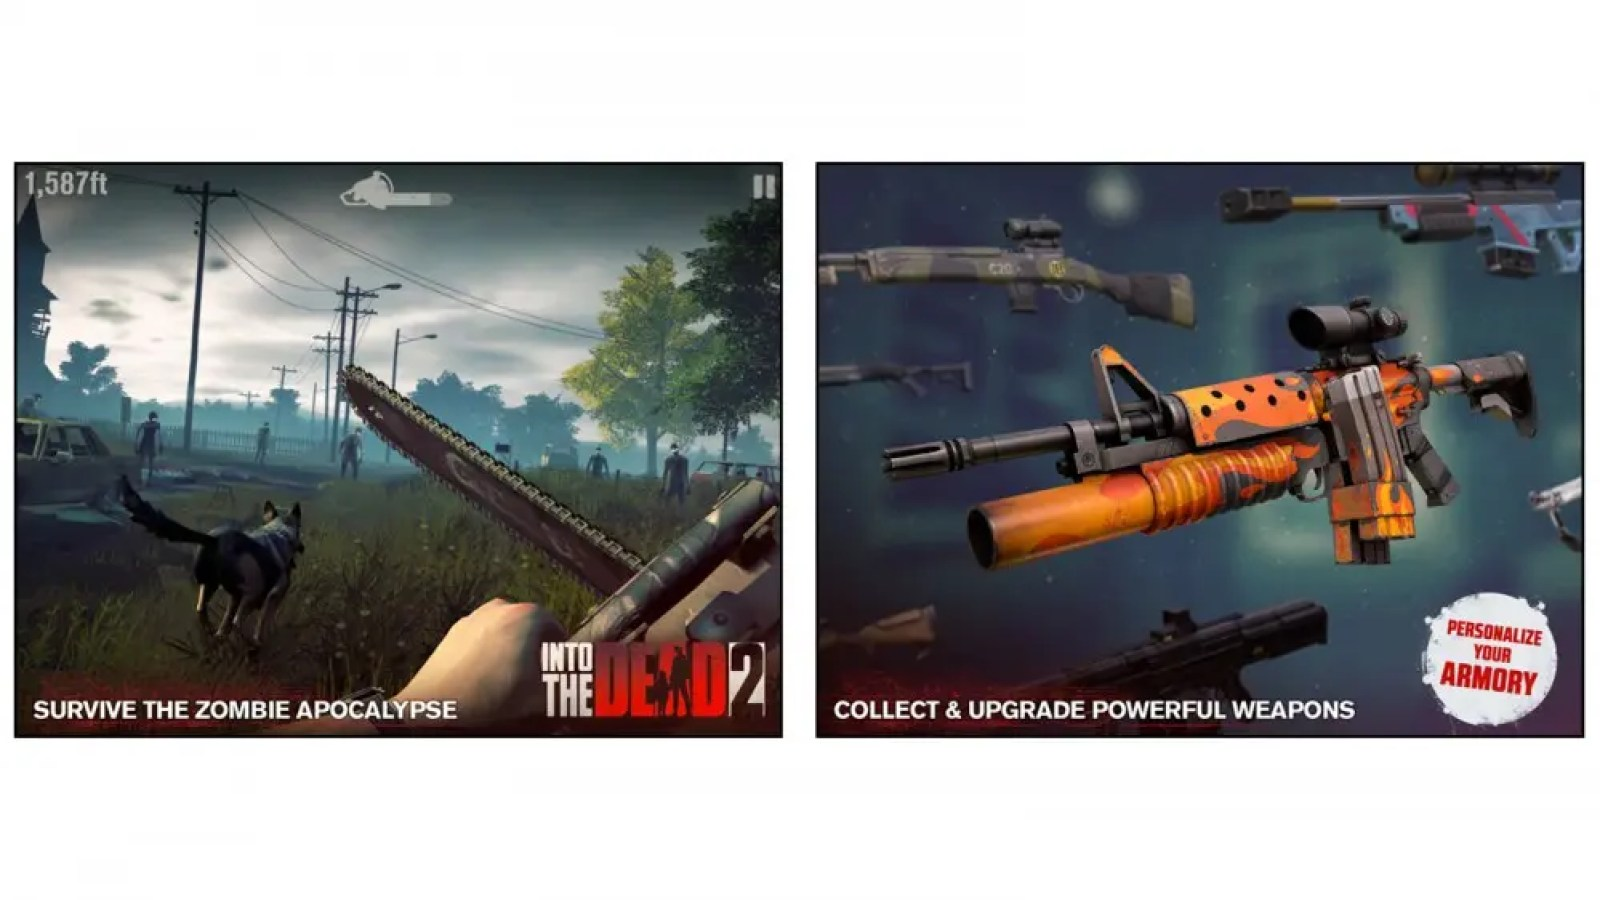 Into the Dead 2 zombie action survival horror game for iOS and Android